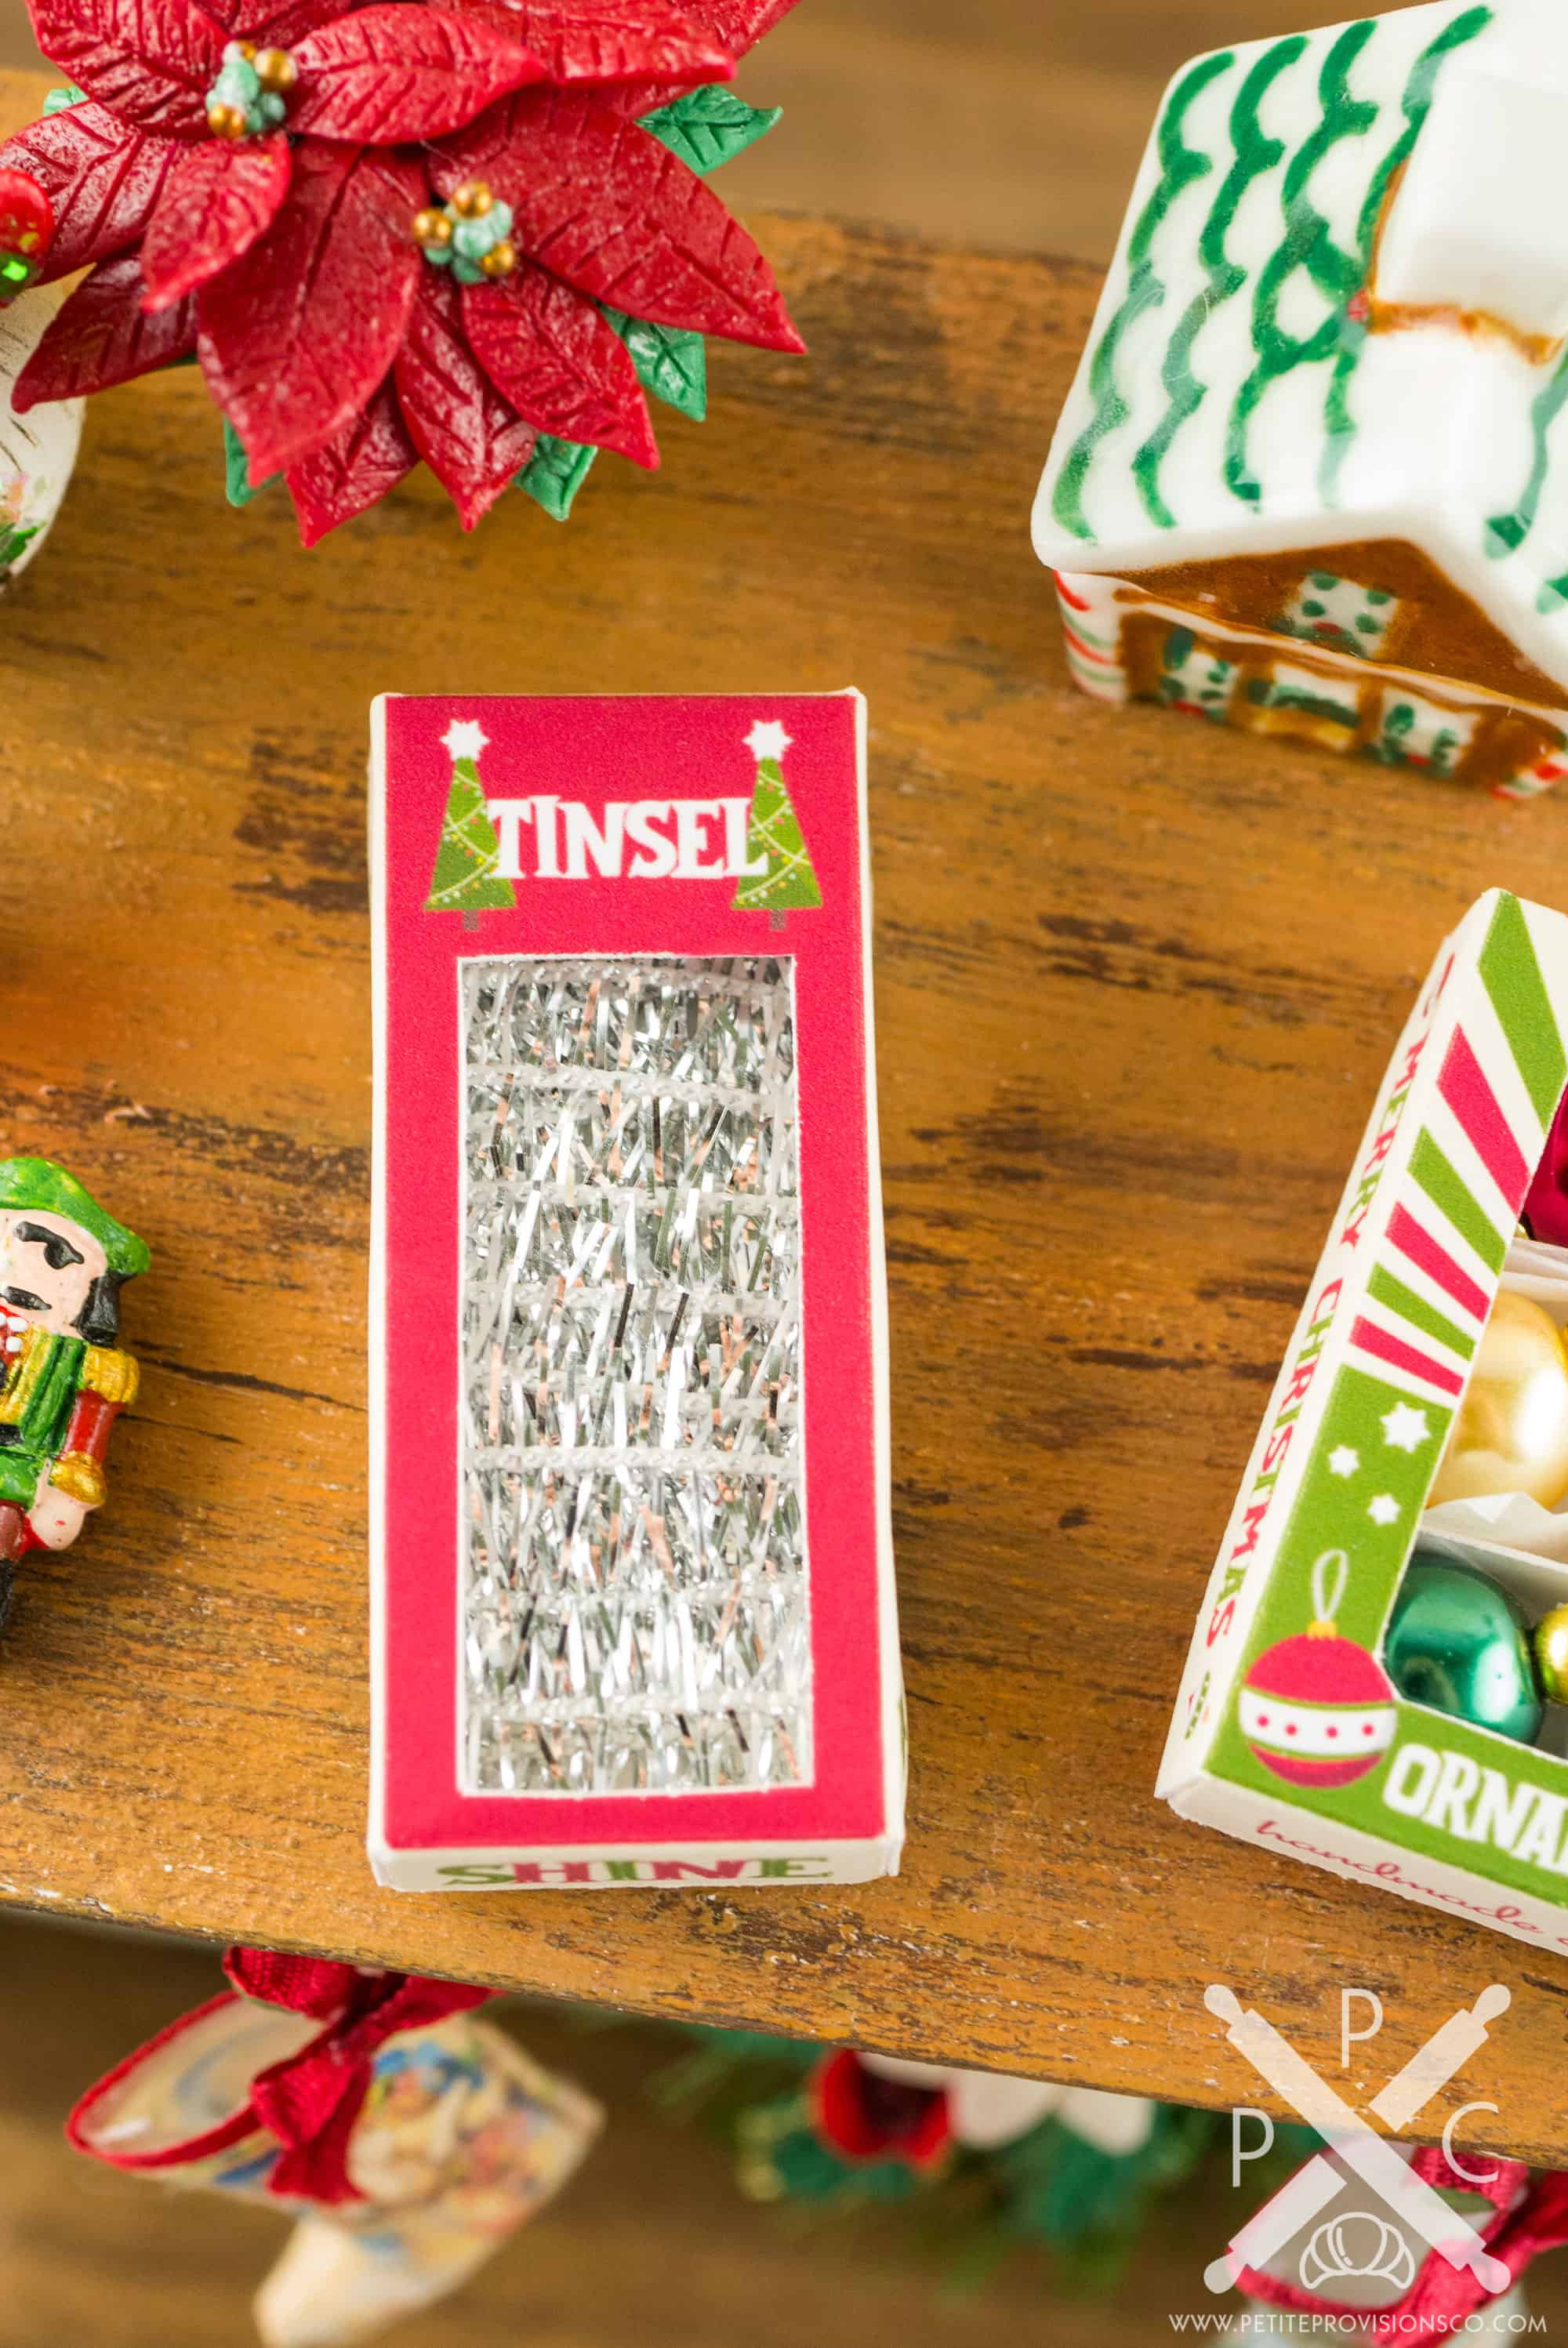 Retro Christmas.Retro Christmas Tinsel Box